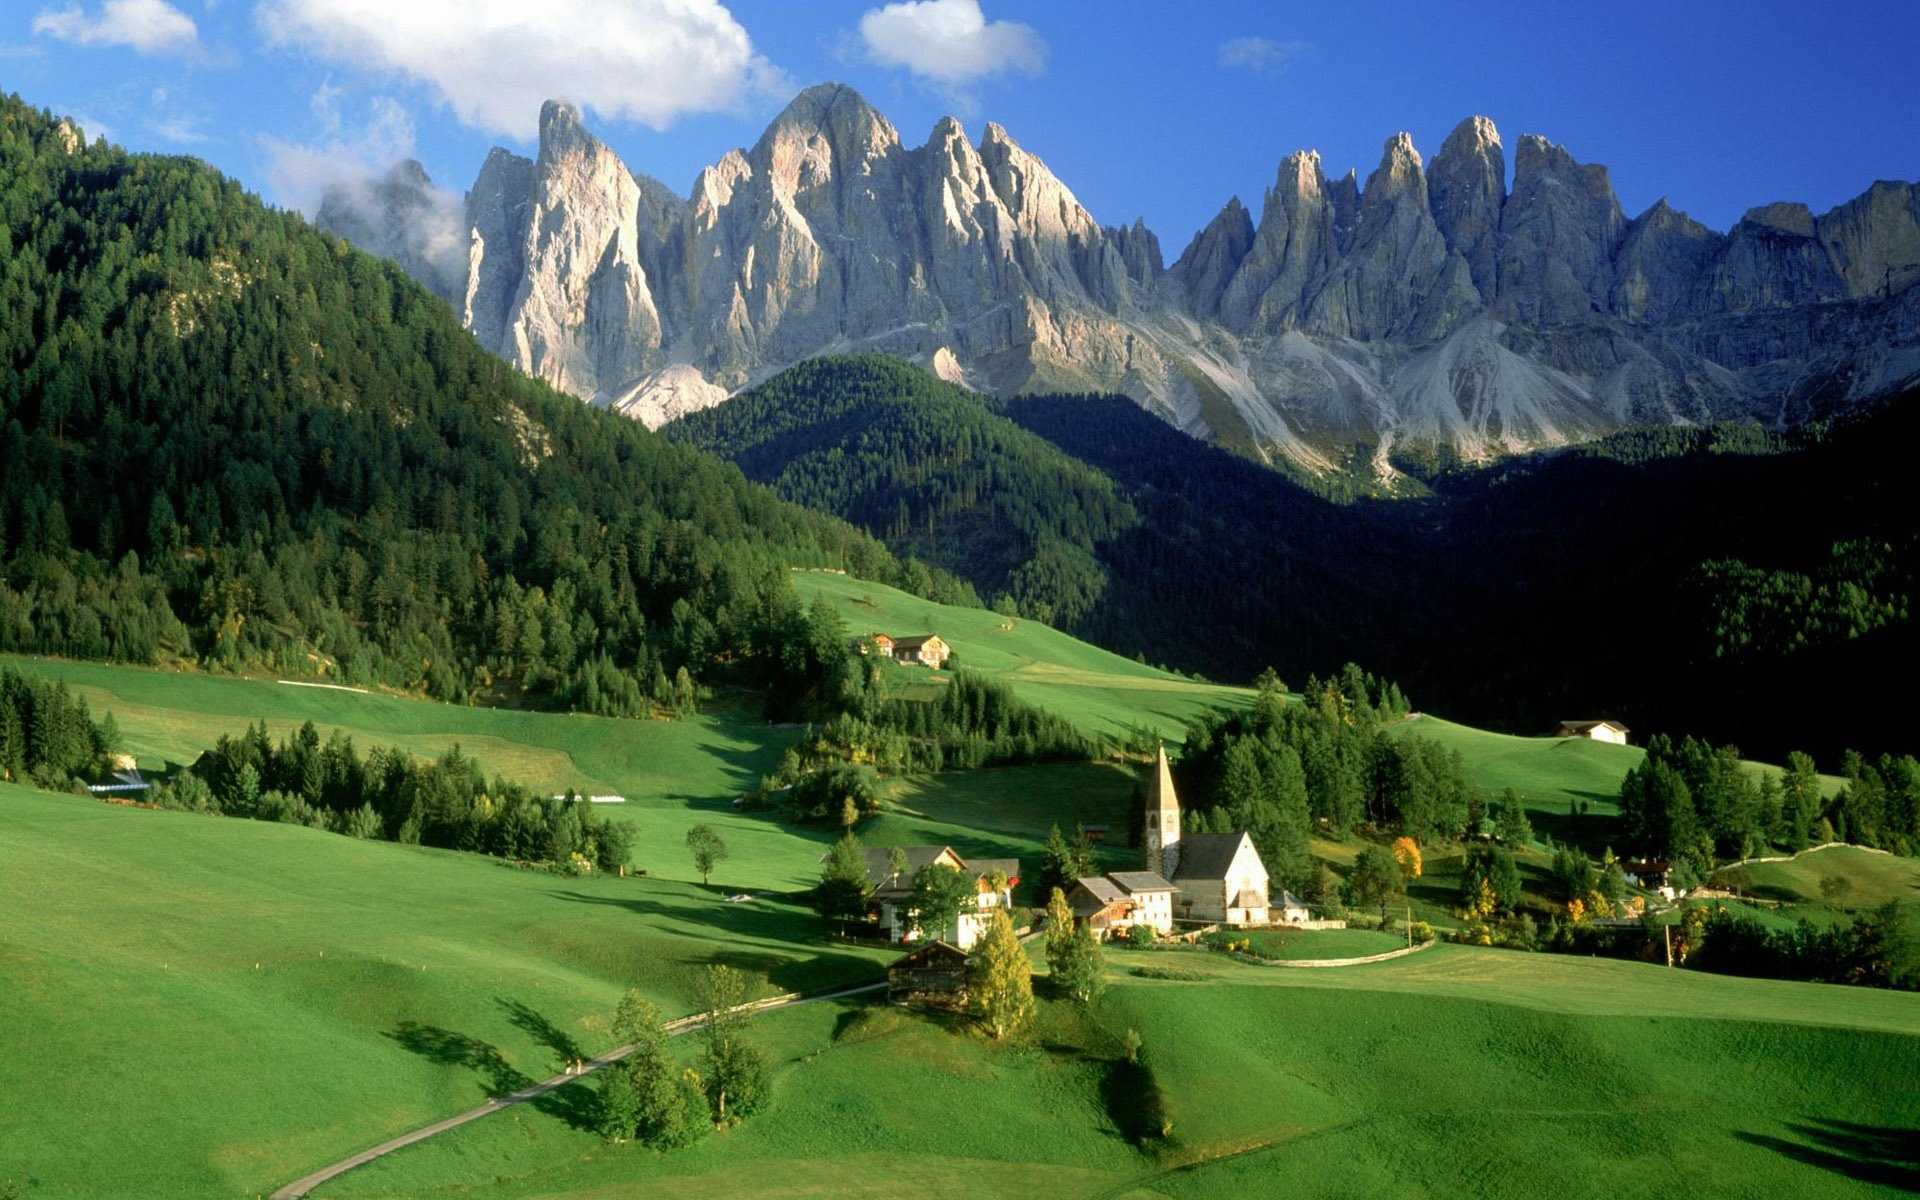 italian natural beauty scenery hd wallpaper #2 - 1920x1200 wallpaper